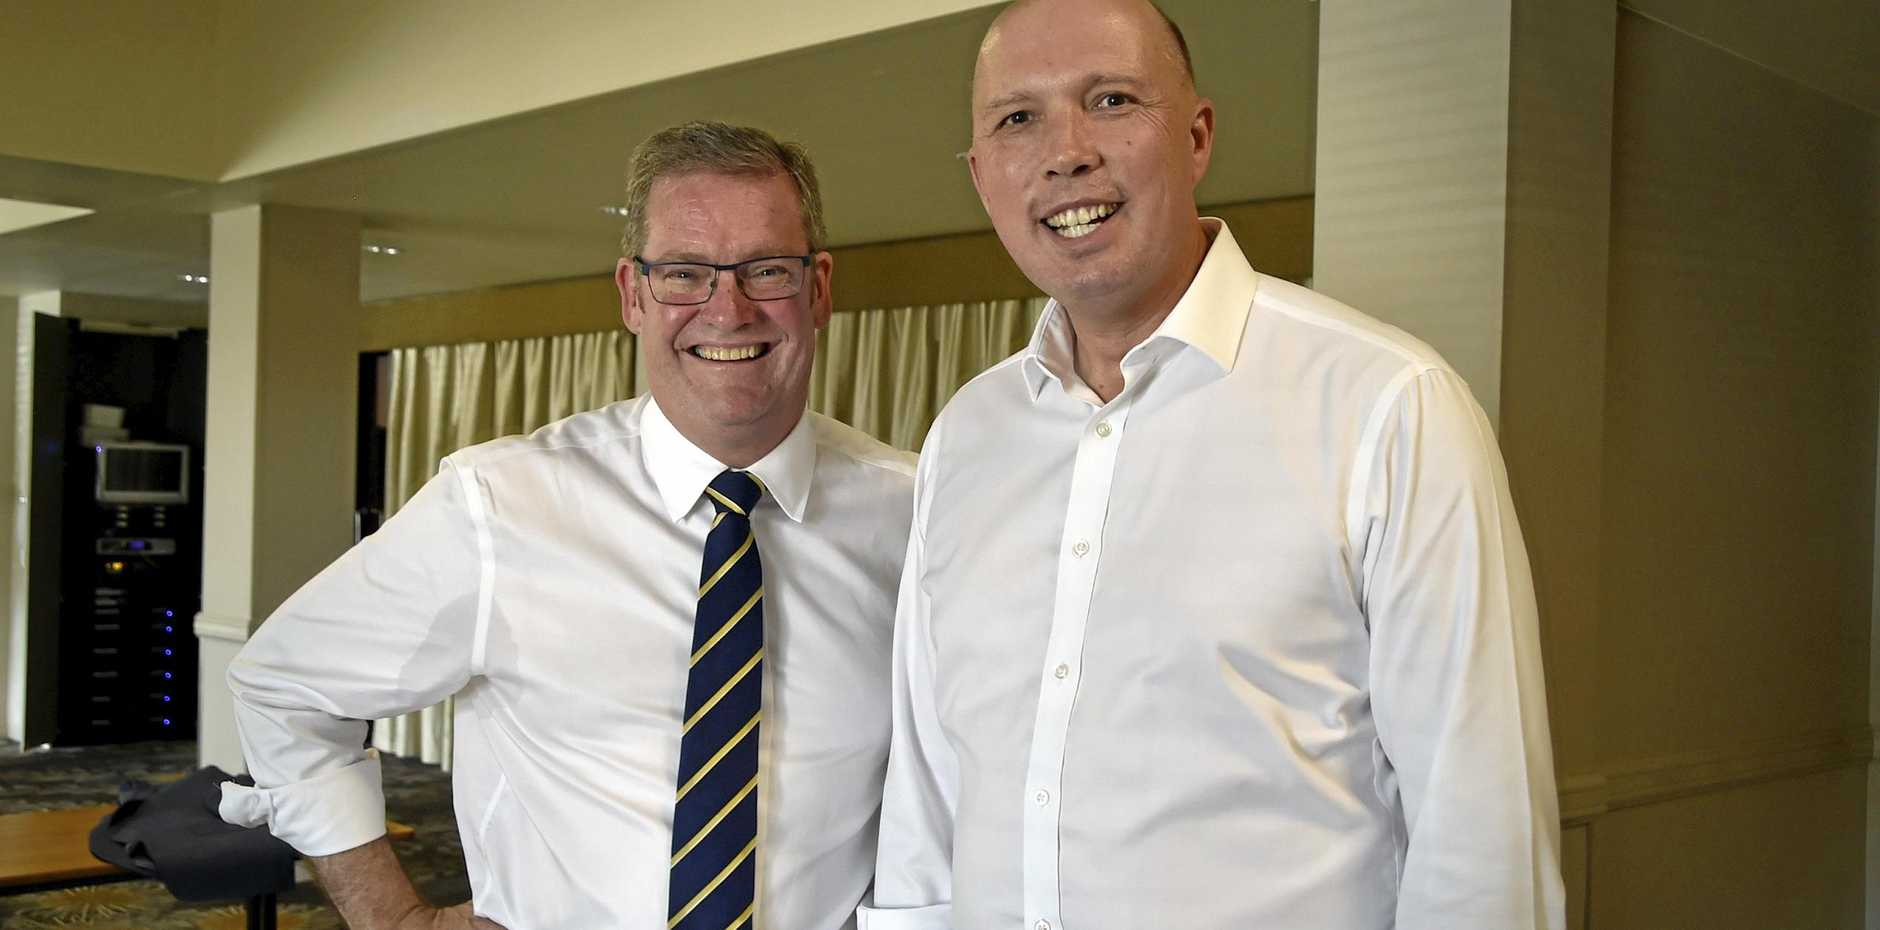 John McVeigh MP with Peter Dutton MP in Toowoomba. April 2018